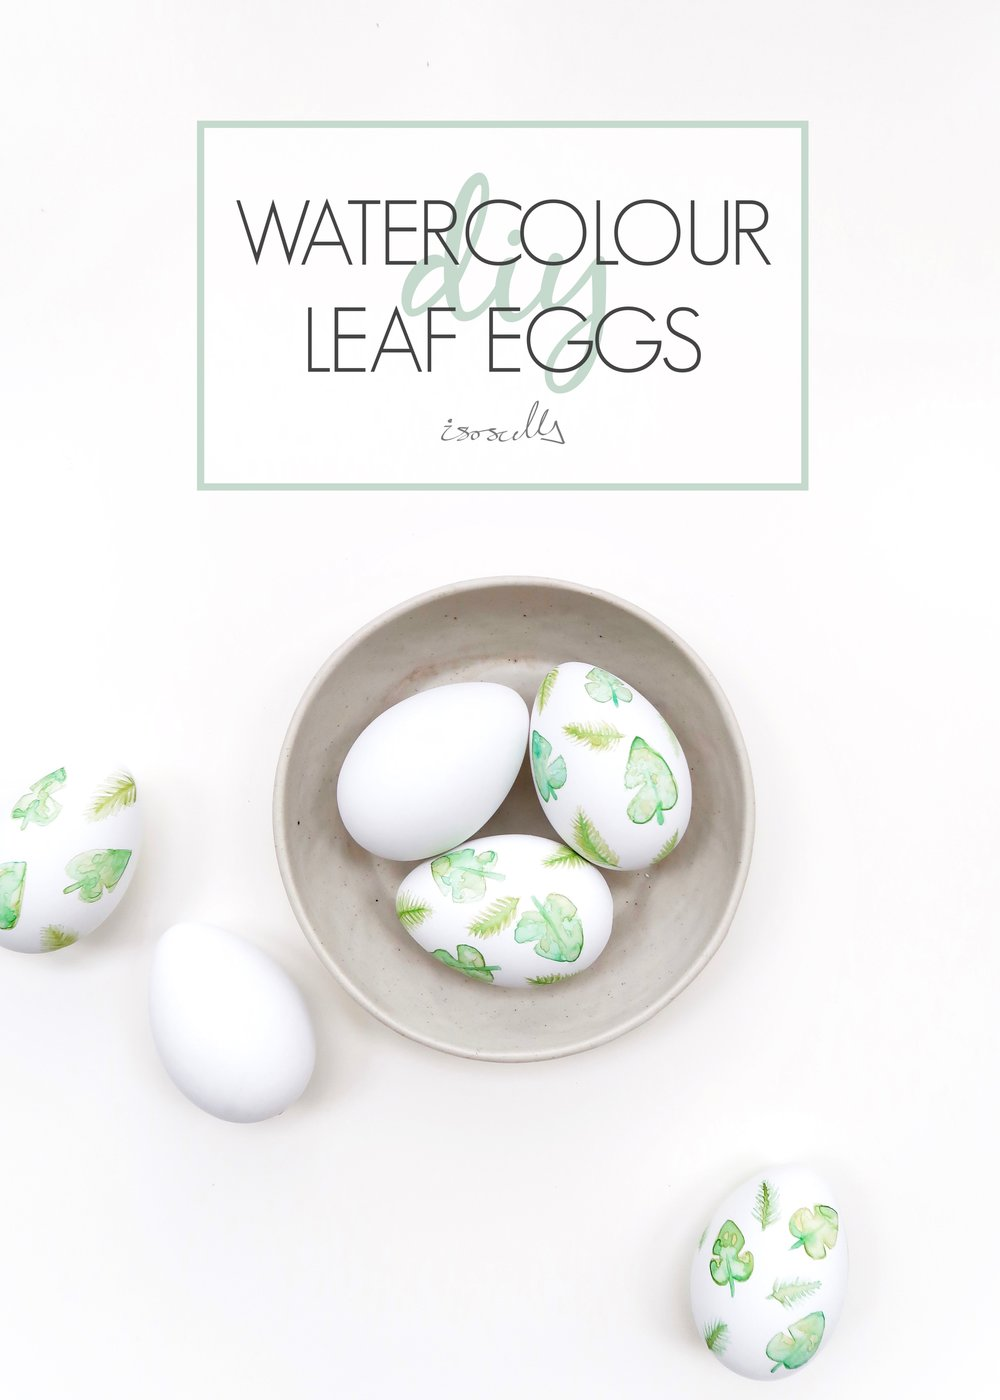 DIY Watercolour Tropical Leaf Eggs by Isoscella